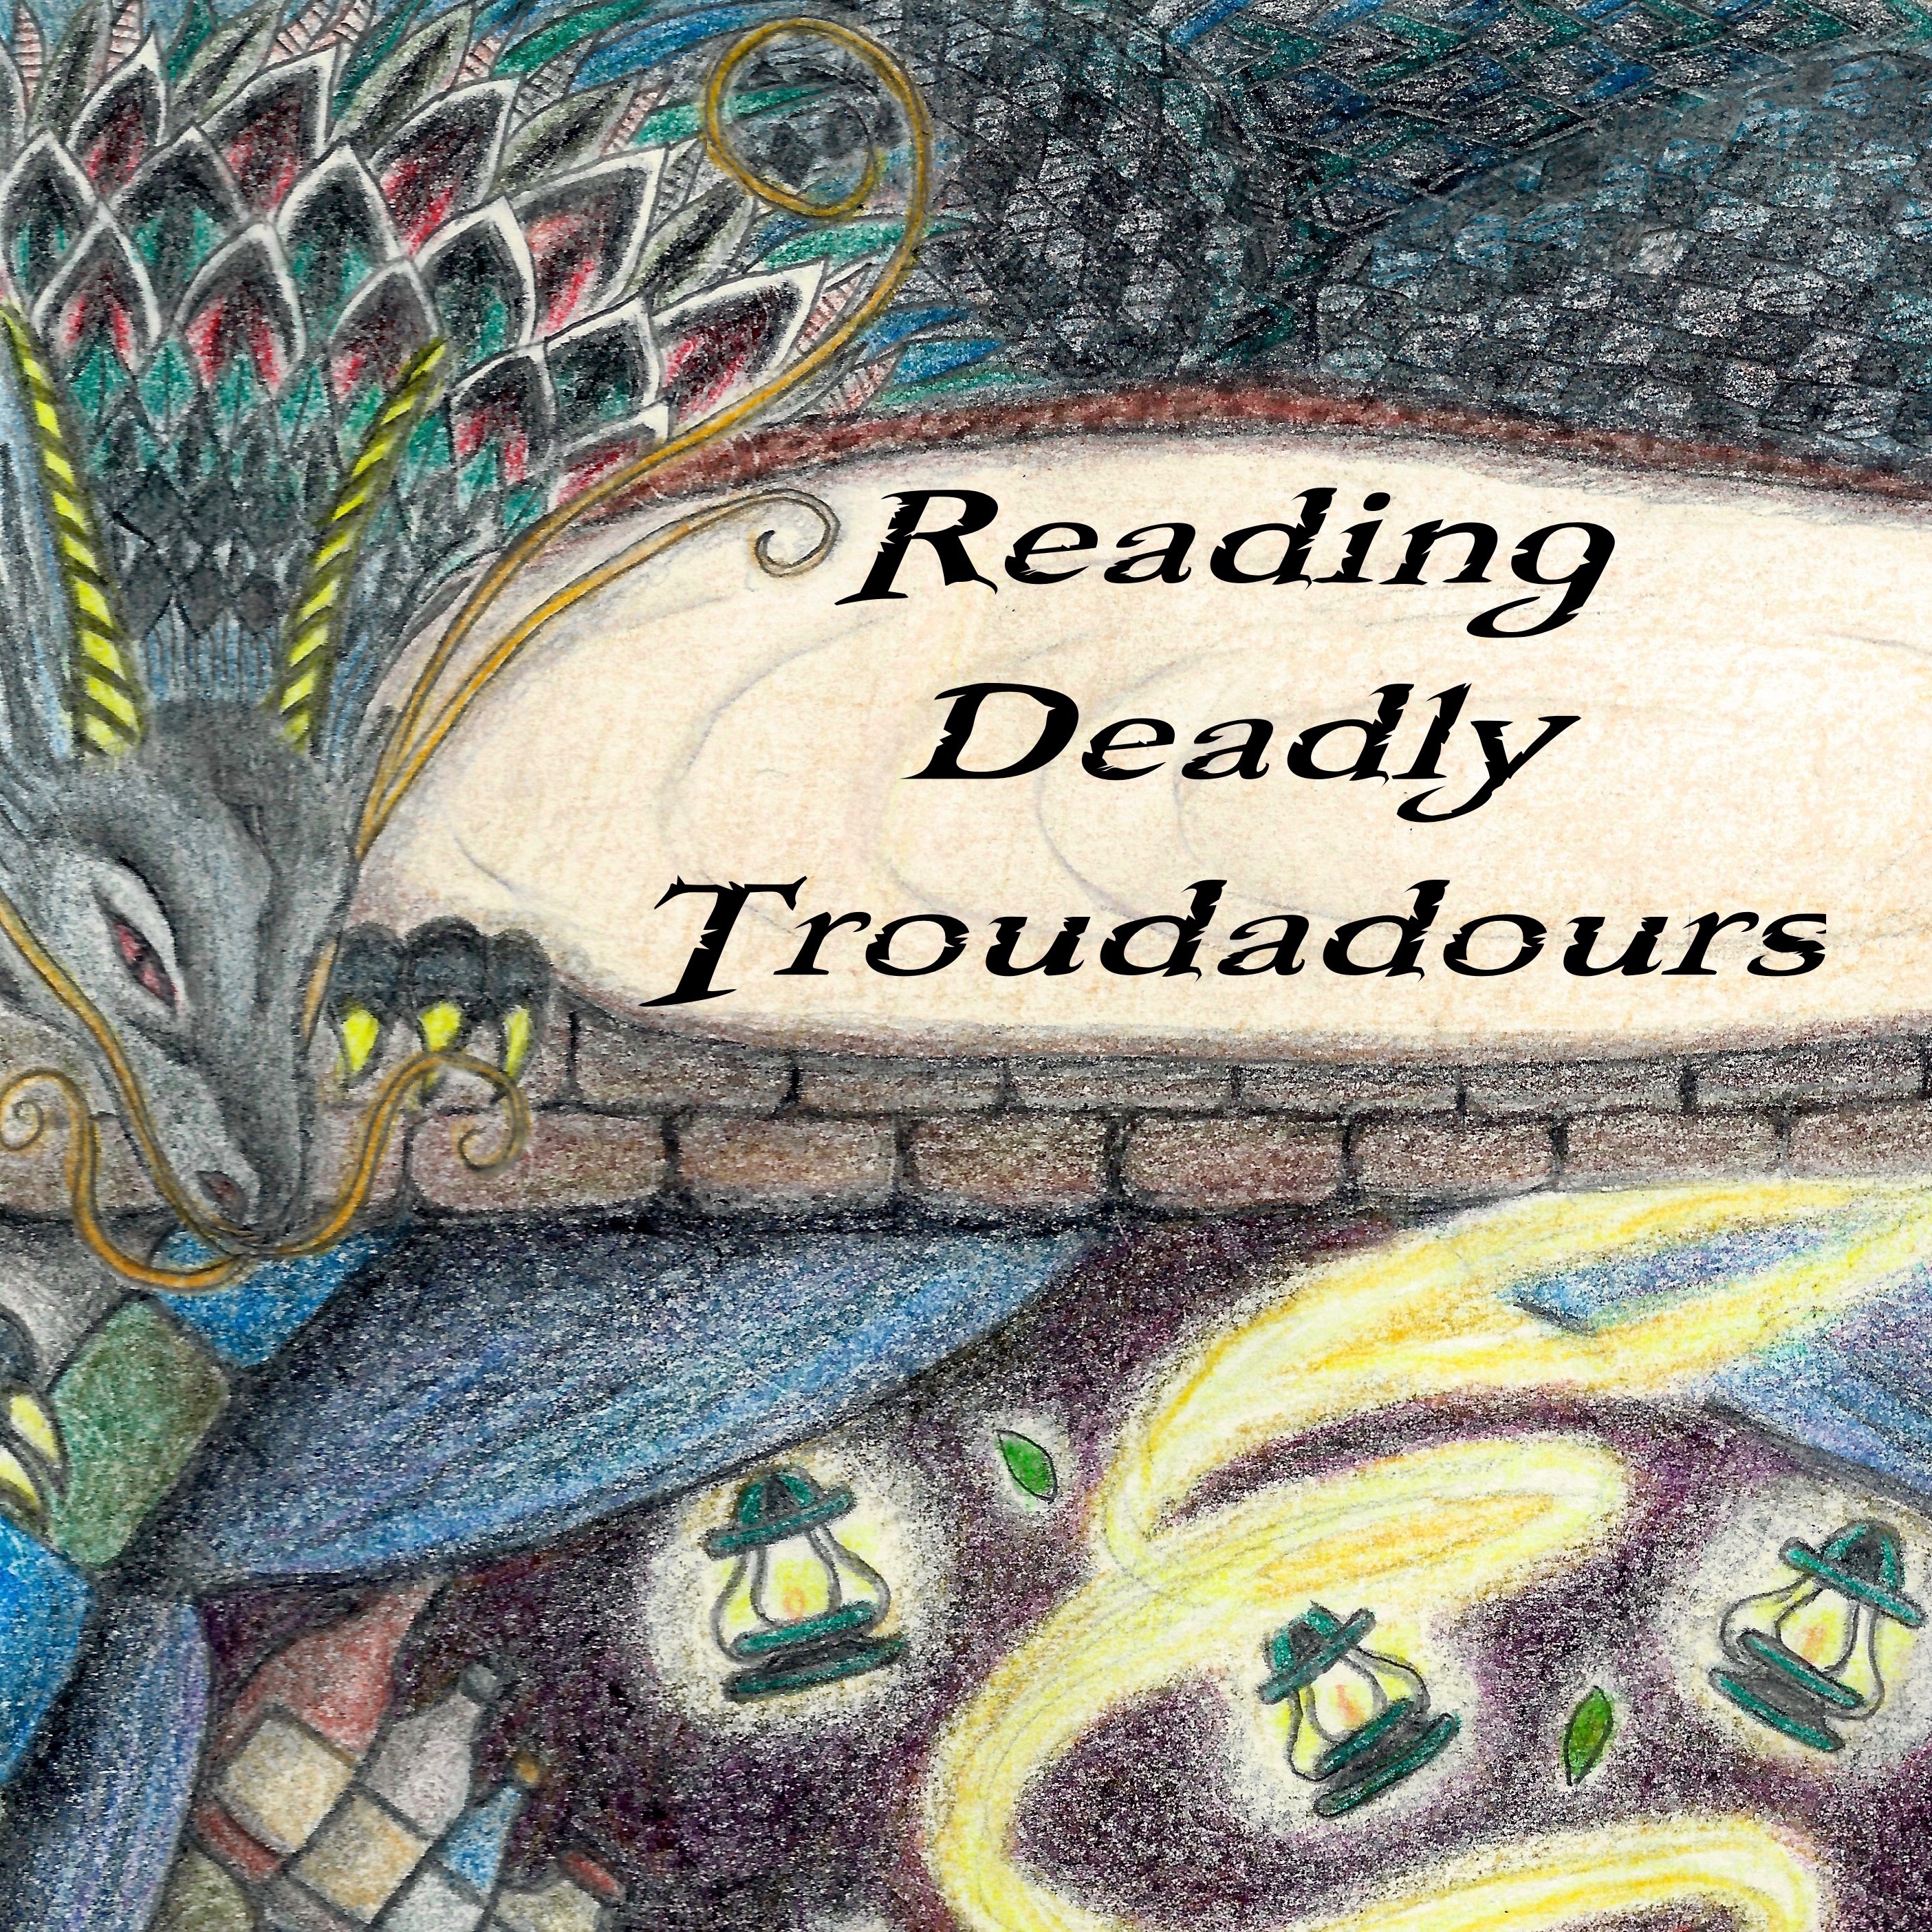 Reading Deadly Troubadours